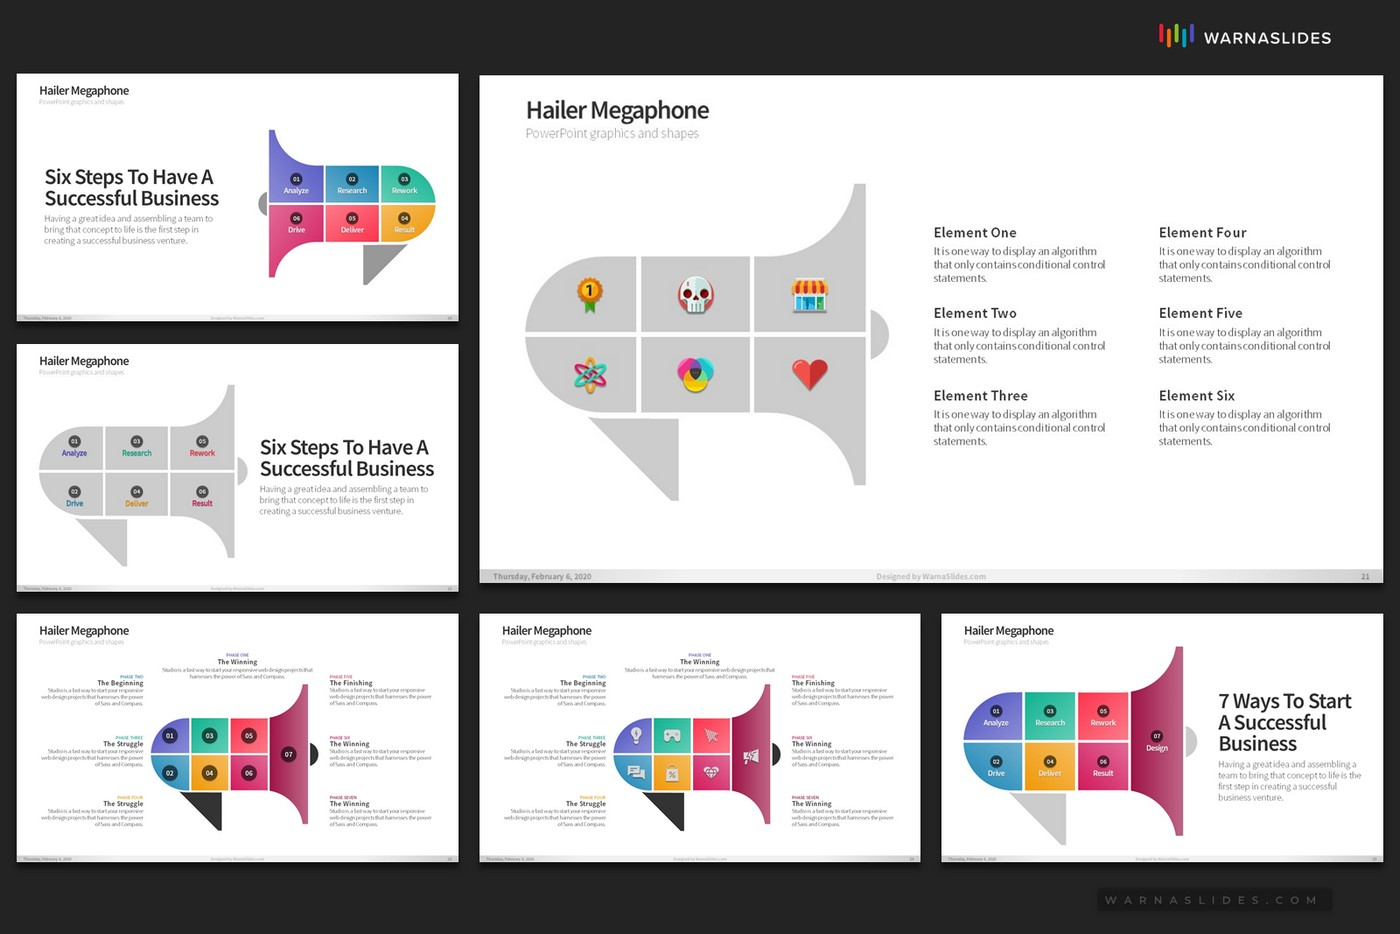 Megaphone-Hailer-Digital-Marketing-PowerPoint-Template-for-Business-Pitch-Deck-Professional-Creative-PowerPoint-Icons-009